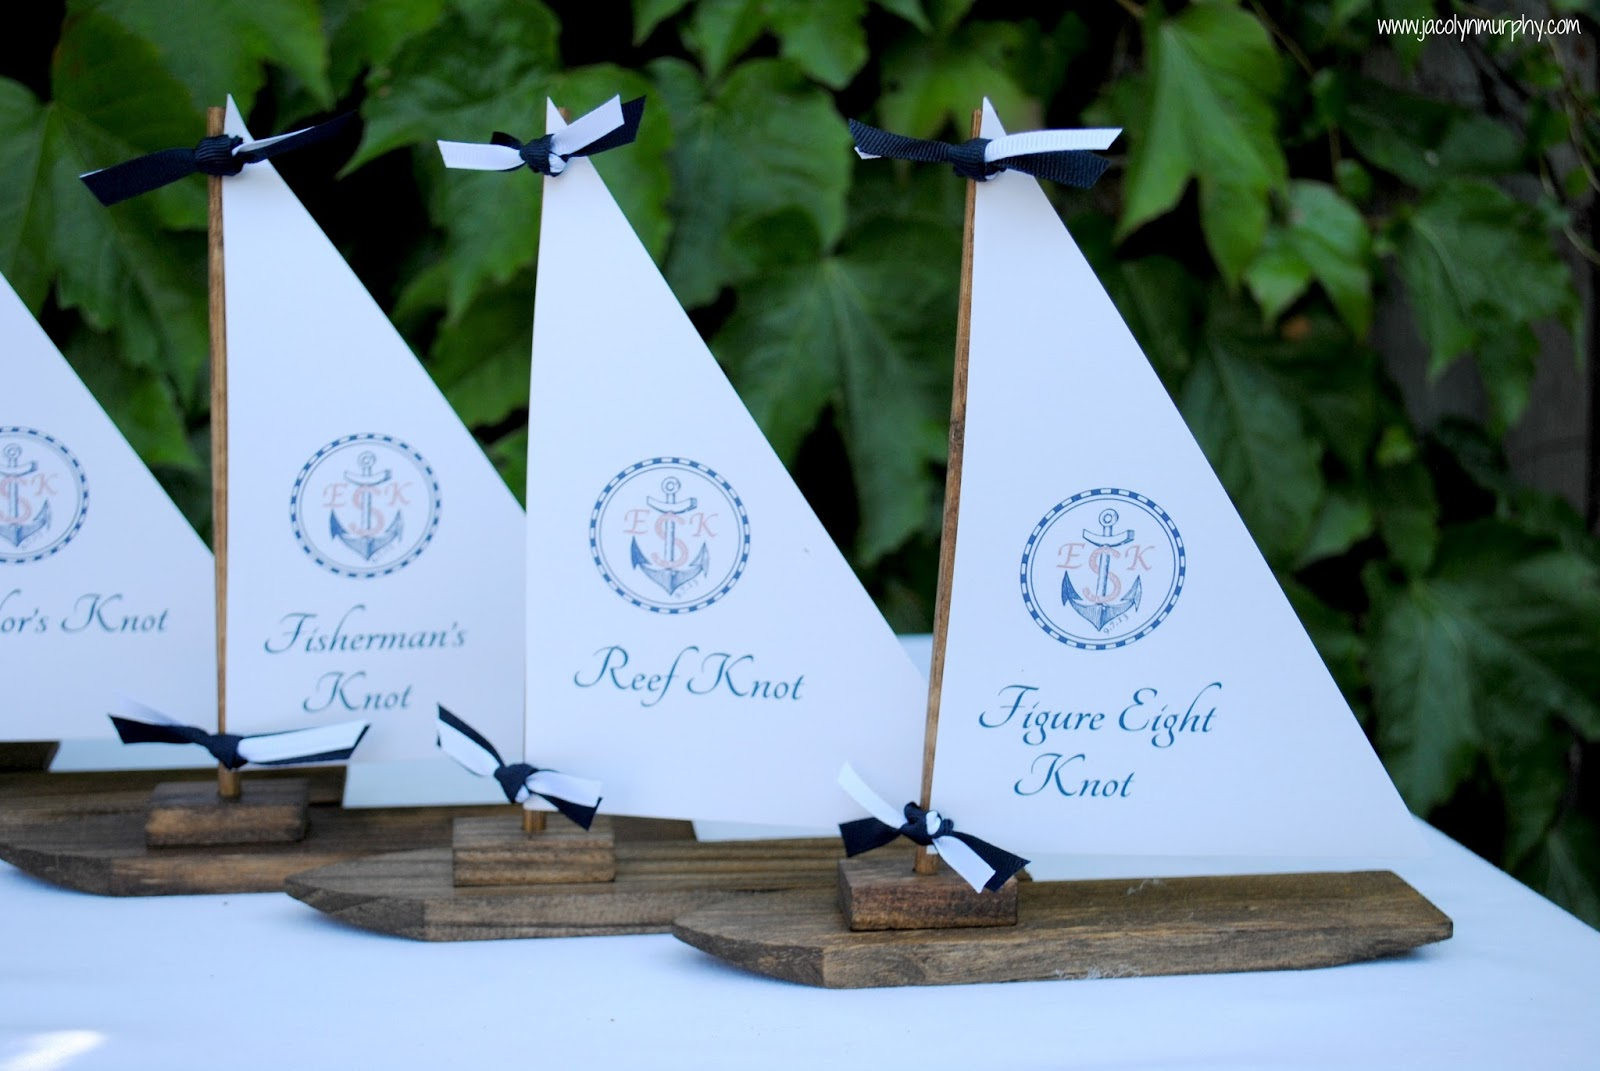 Jac o' lyn Murphy: Nautical Wedding Centerpieces...to Hitch or Knot?